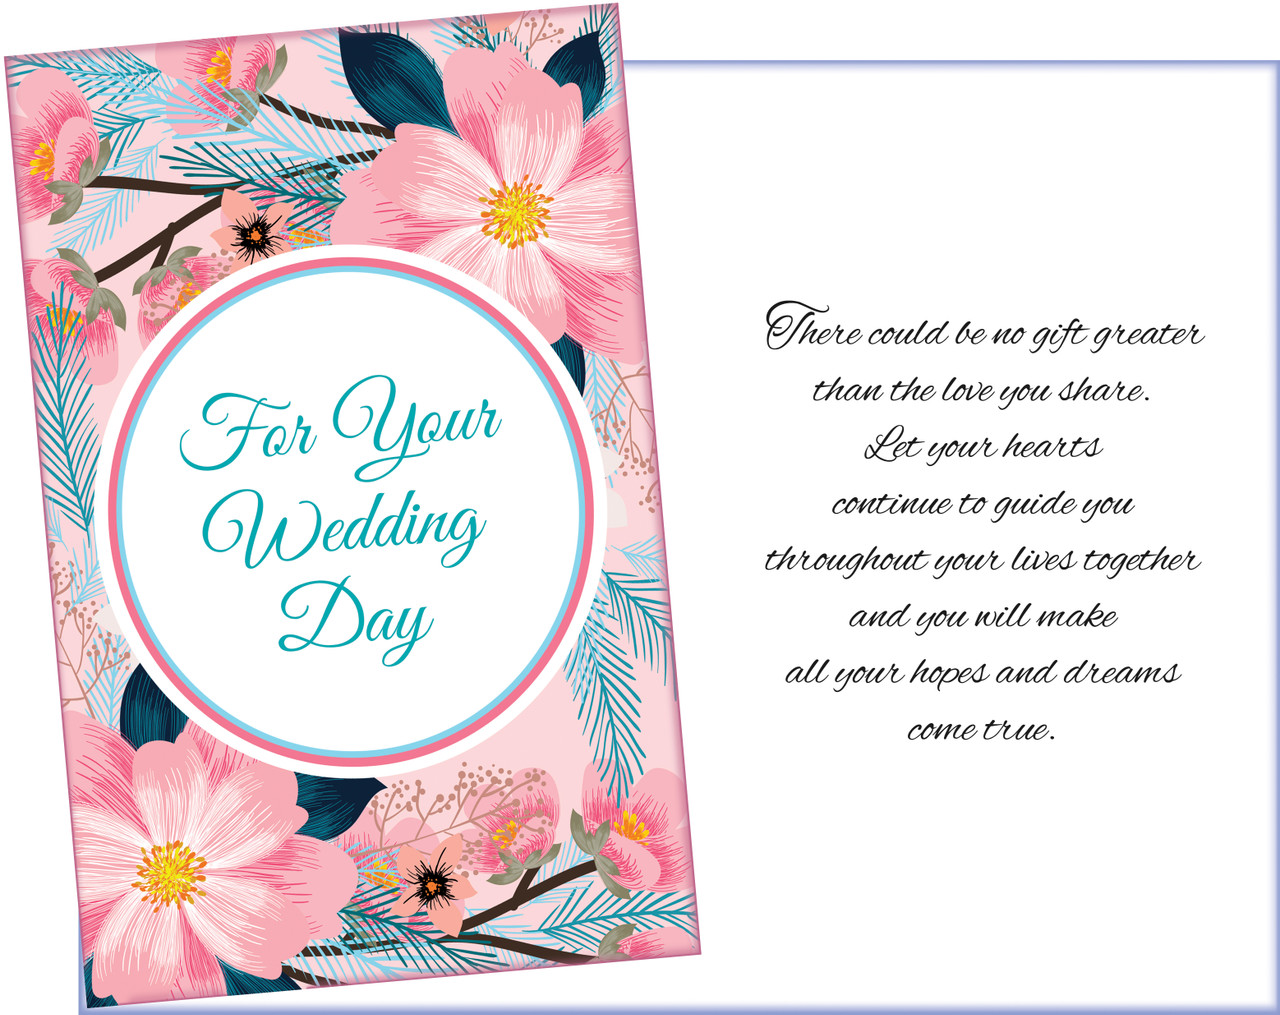 95931 six wedding greeting cards with six envelopes